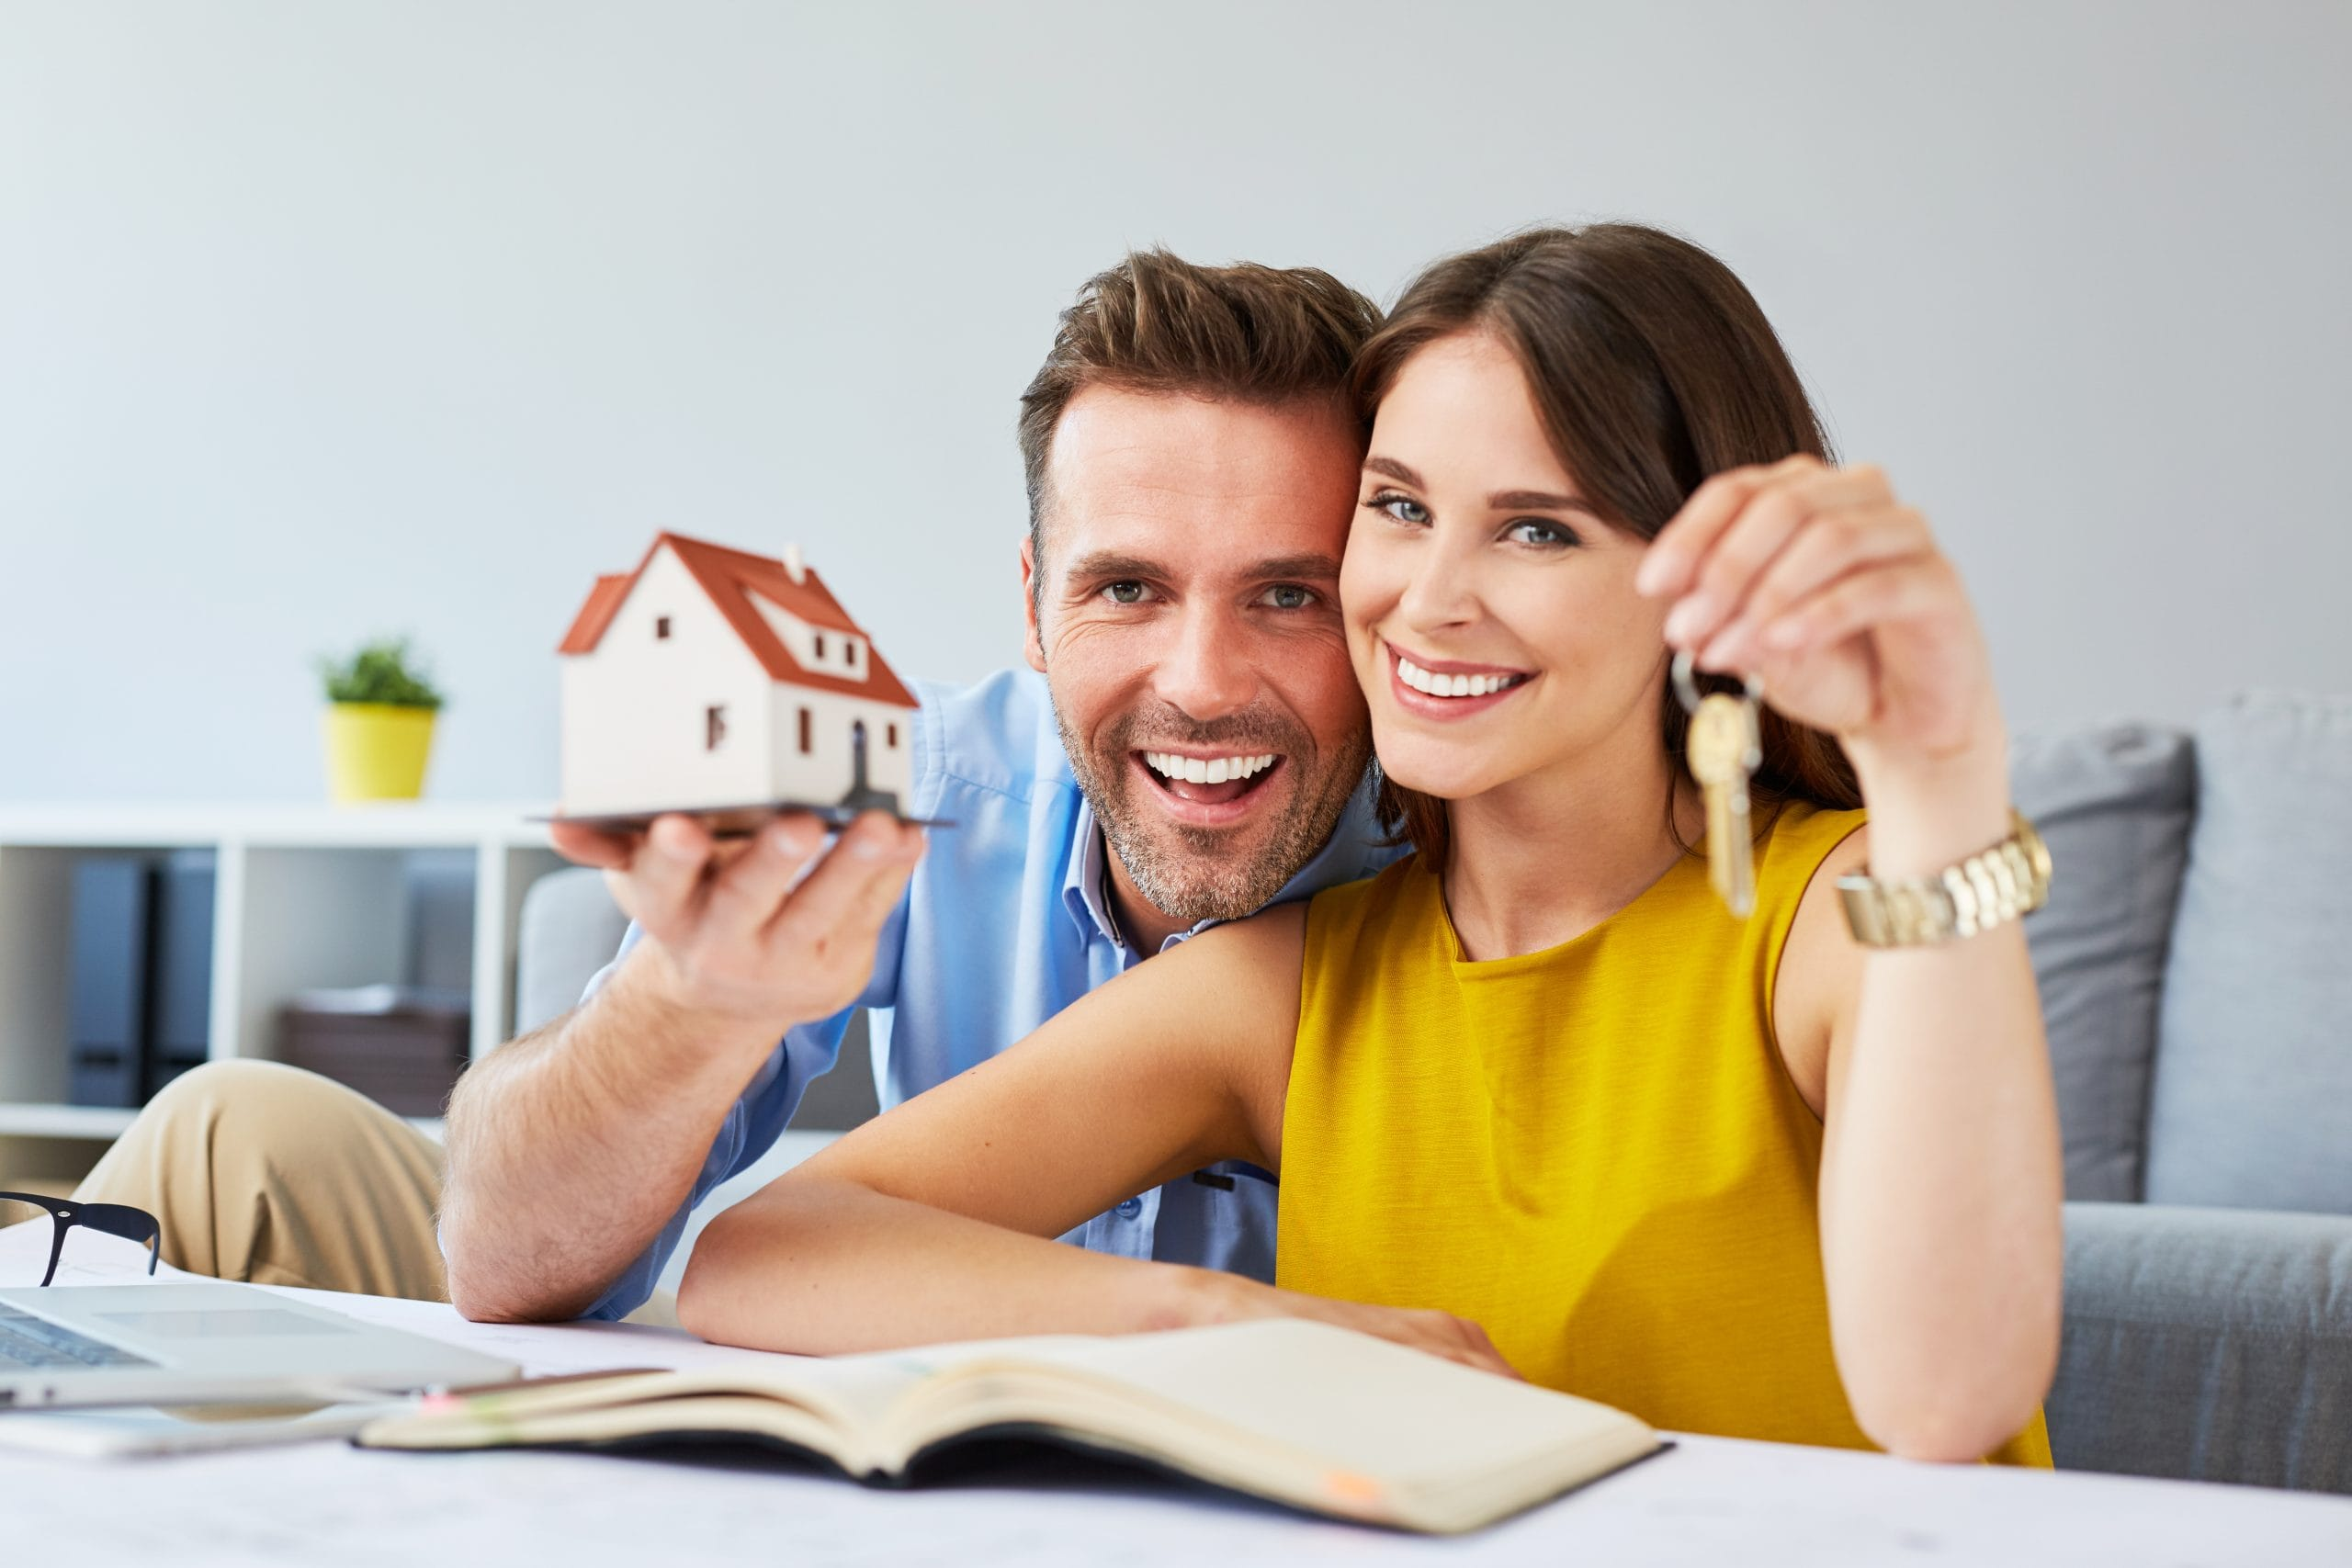 Couple with house and key